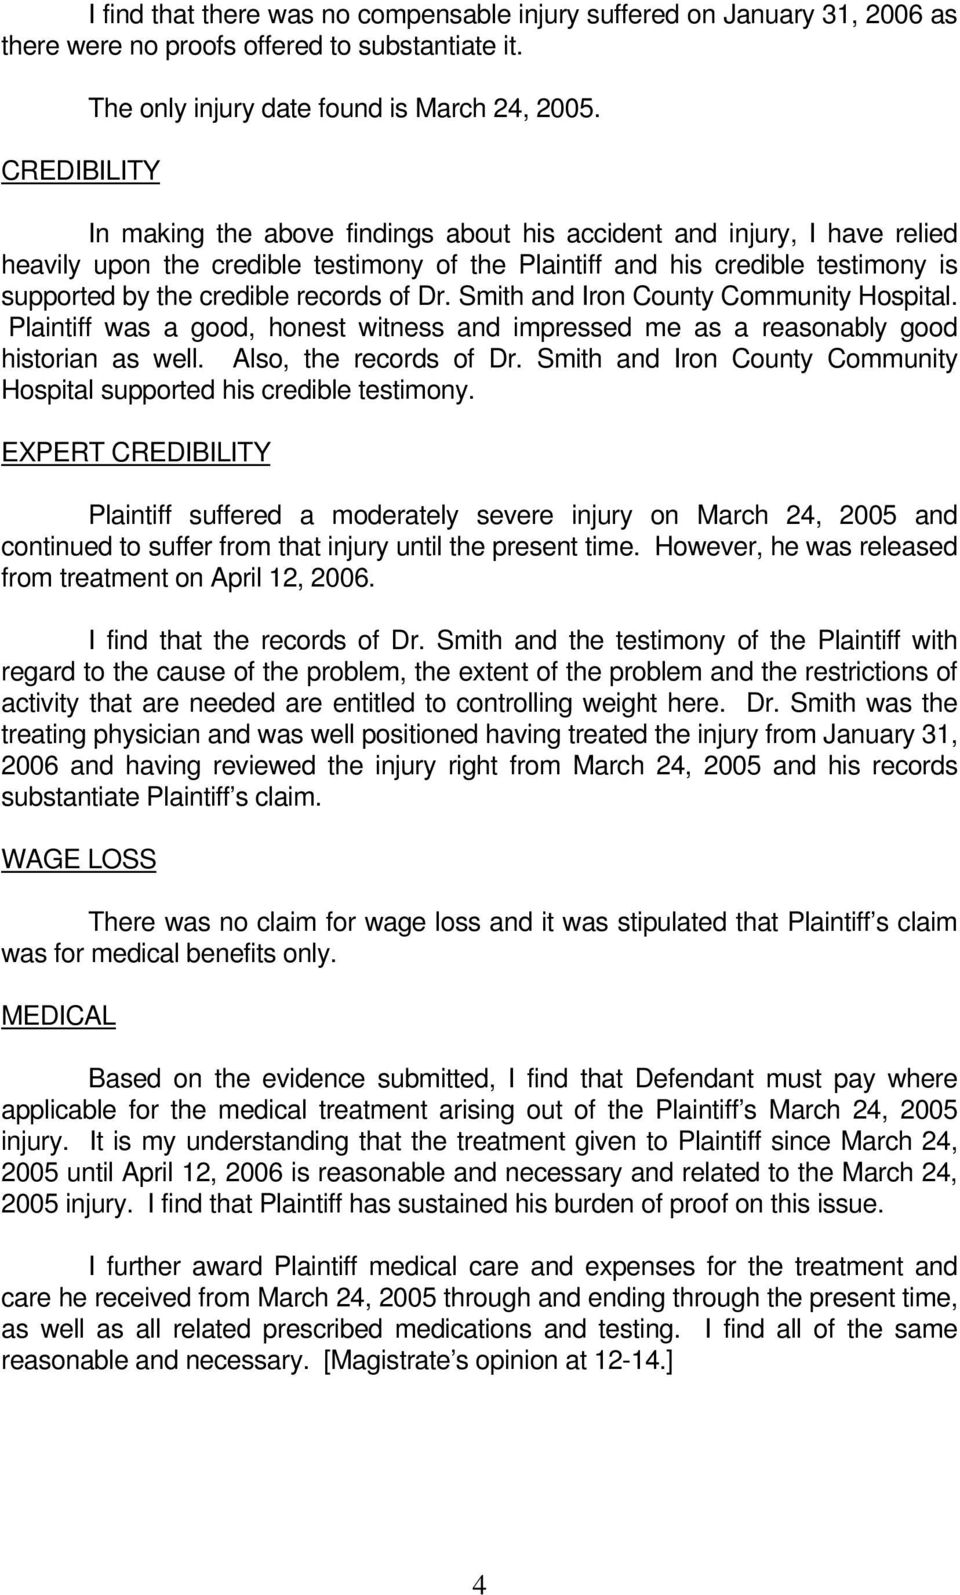 Smith and Iron County Community Hospital. Plaintiff was a good, honest witness and impressed me as a reasonably good historian as well. Also, the records of Dr.